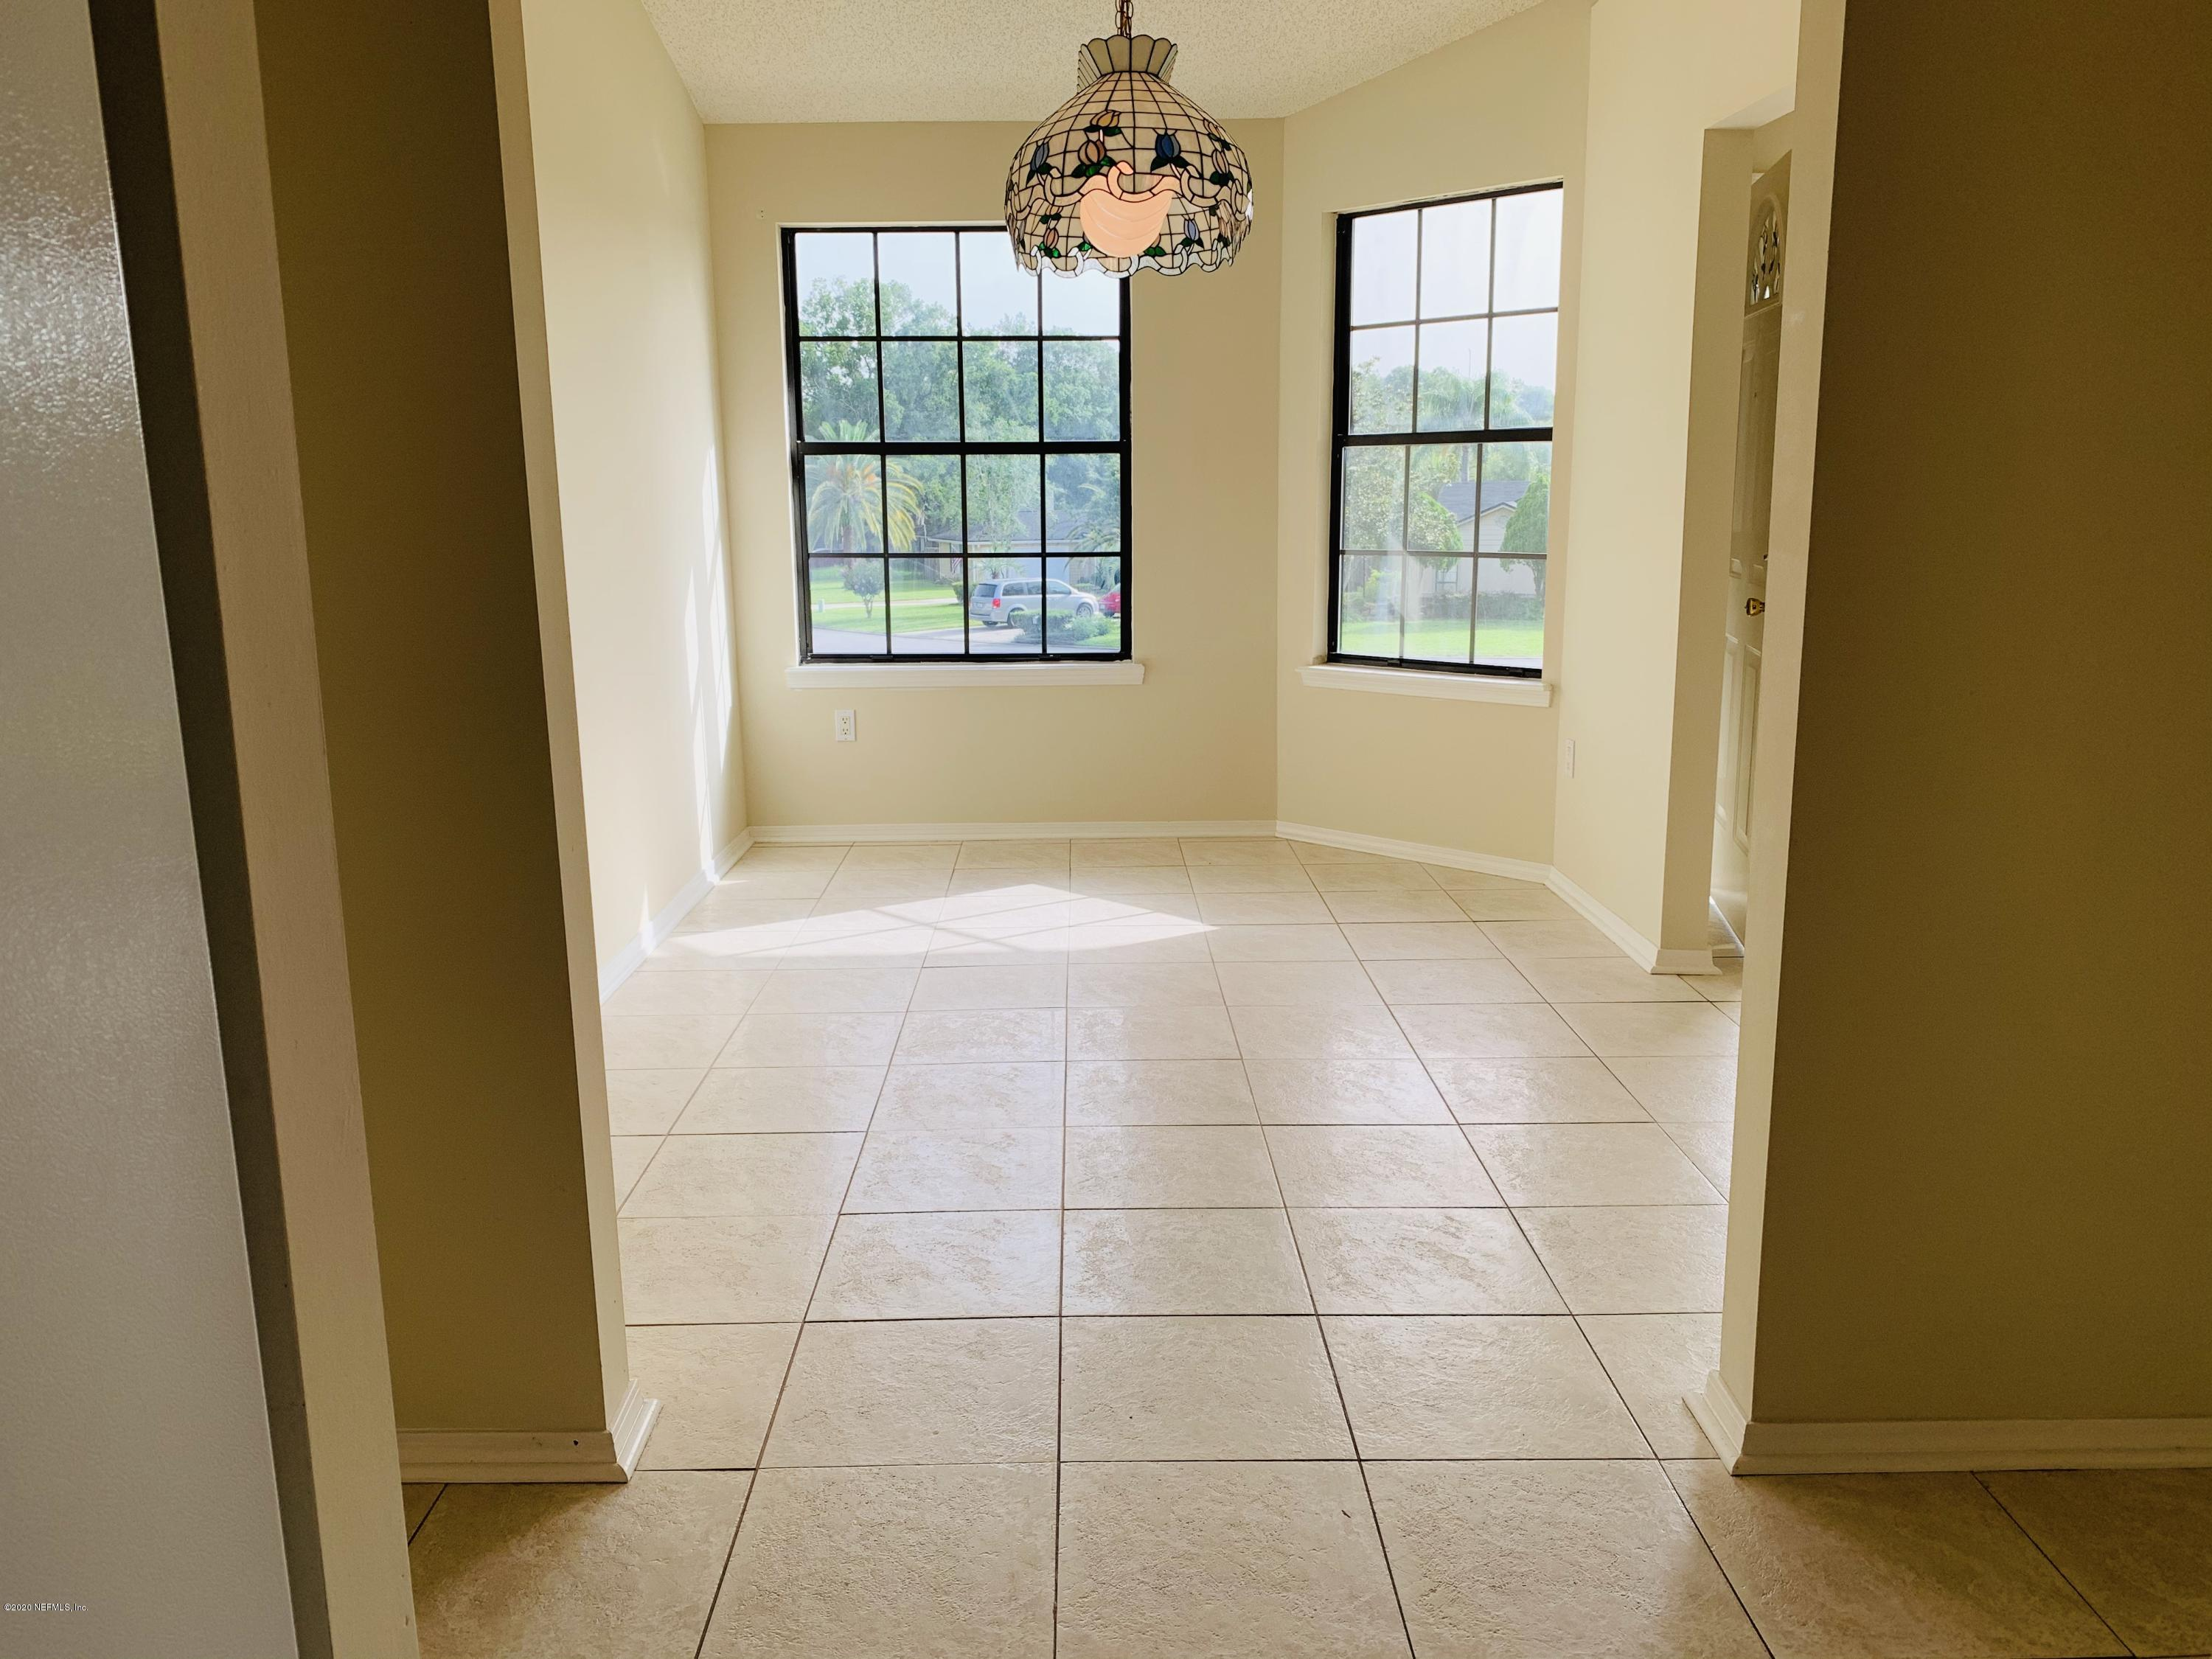 663 CHARLES PINCKNEY, ORANGE PARK, FLORIDA 32073, 3 Bedrooms Bedrooms, ,2 BathroomsBathrooms,Residential,For sale,CHARLES PINCKNEY,1060076